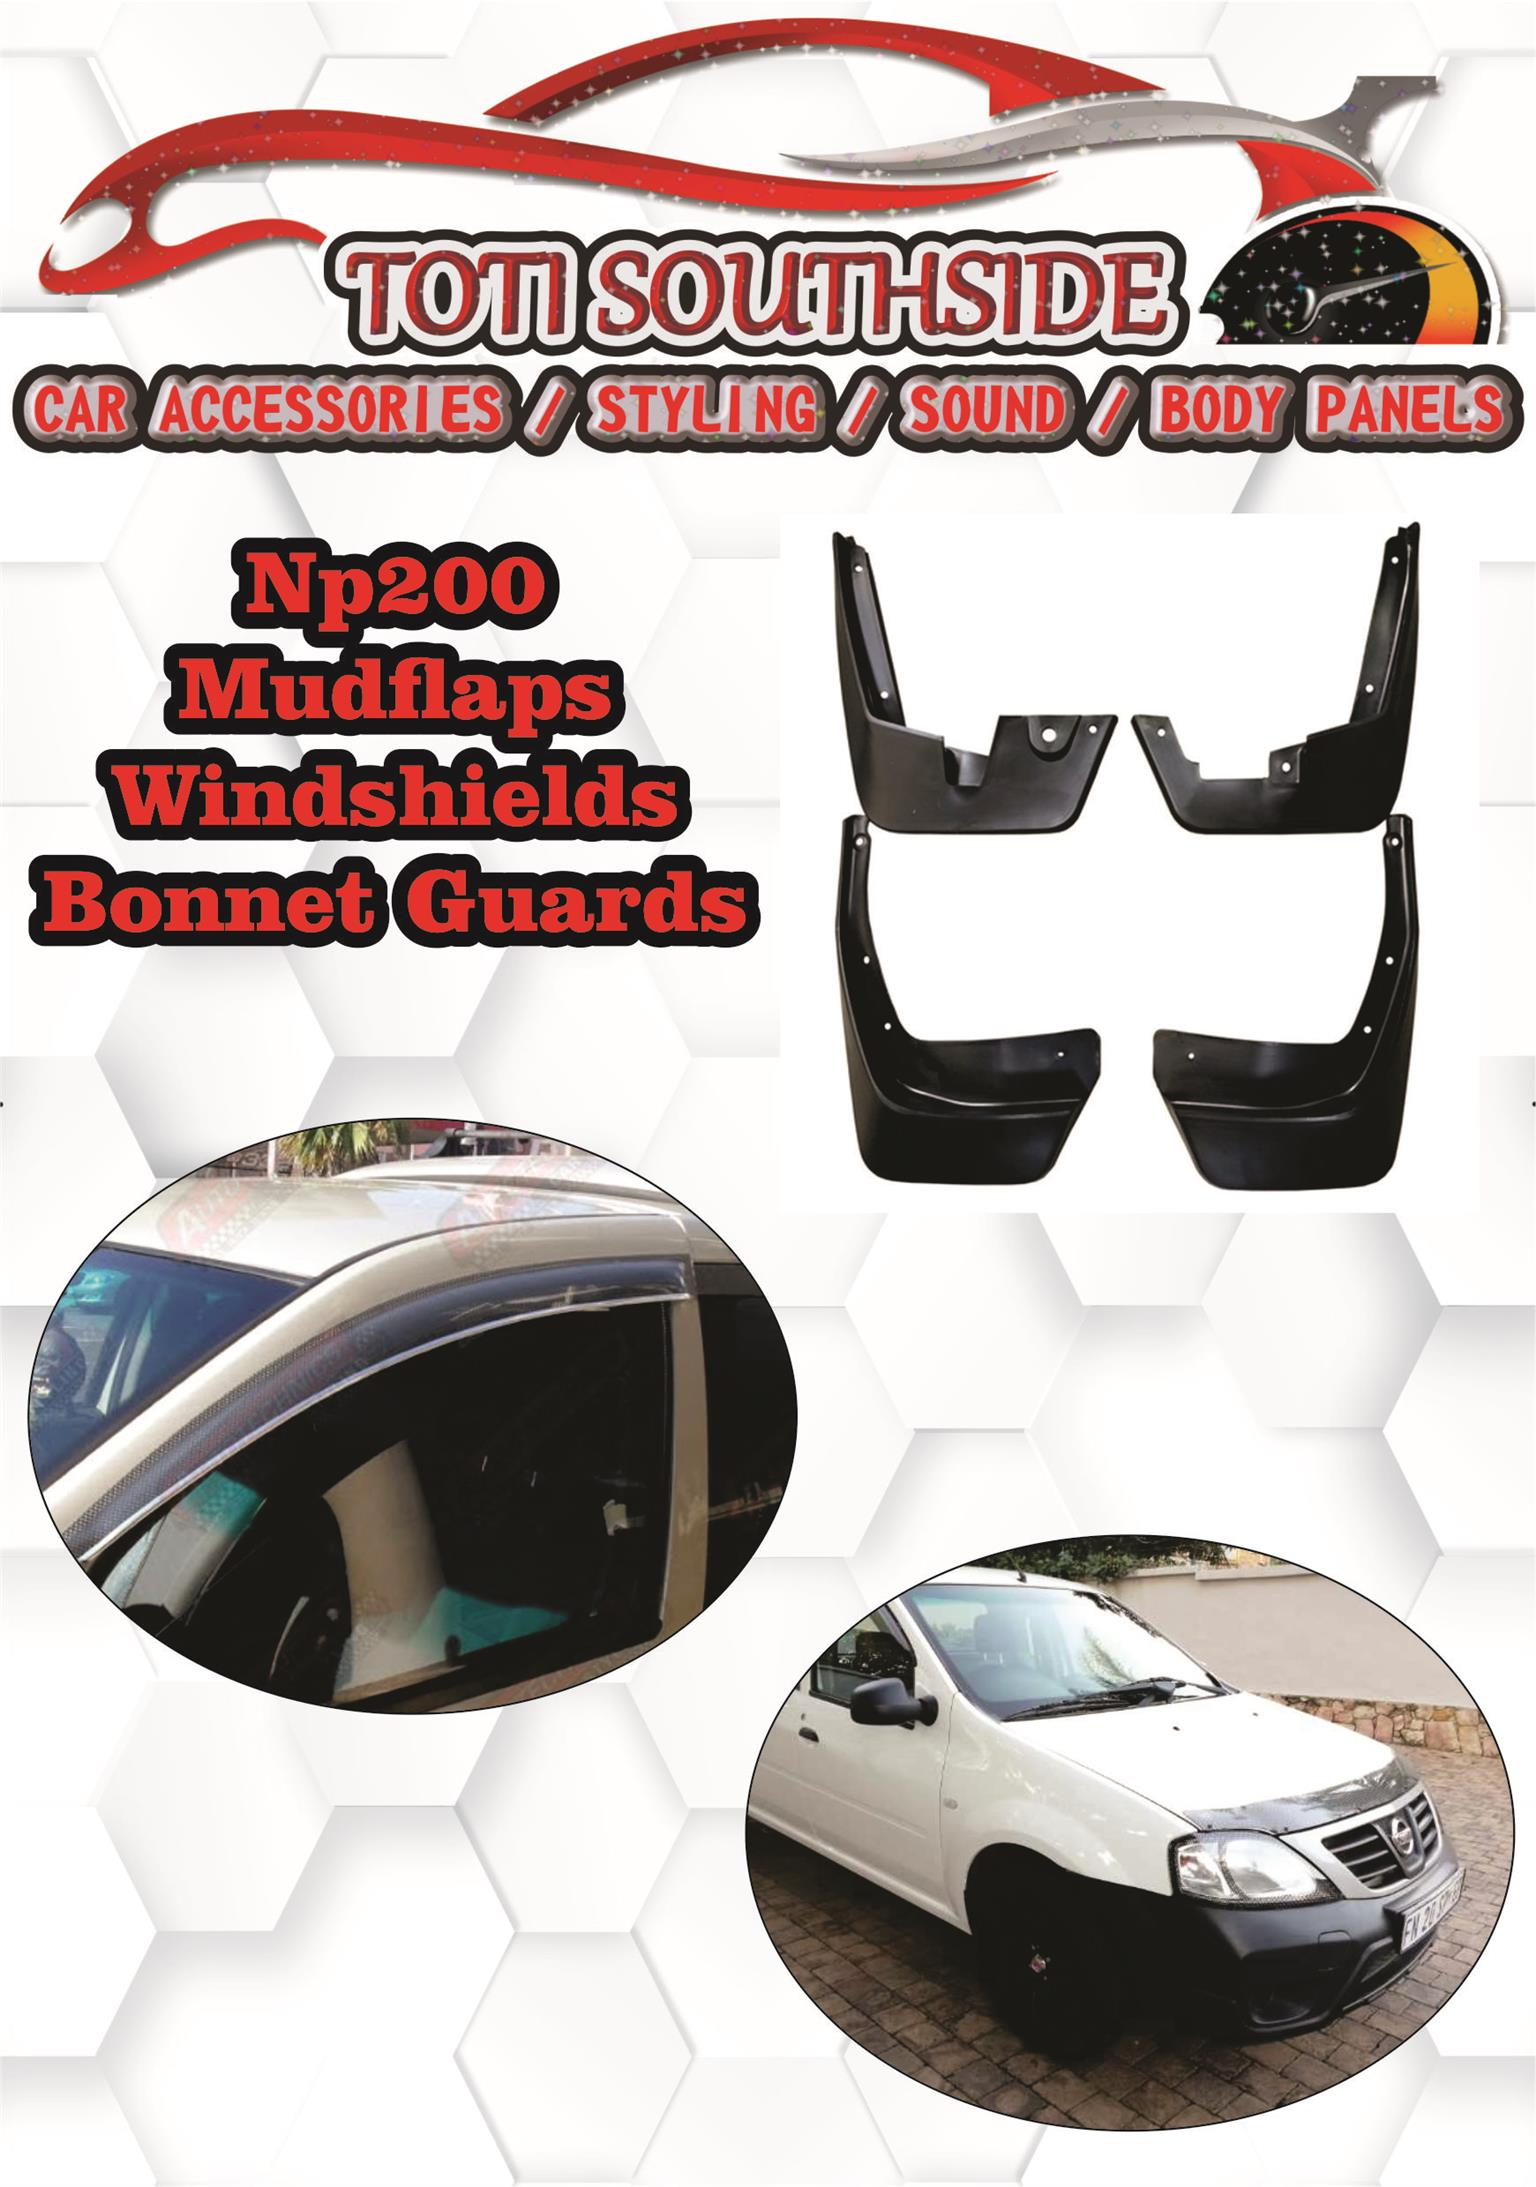 Nissan NP200 Accessories